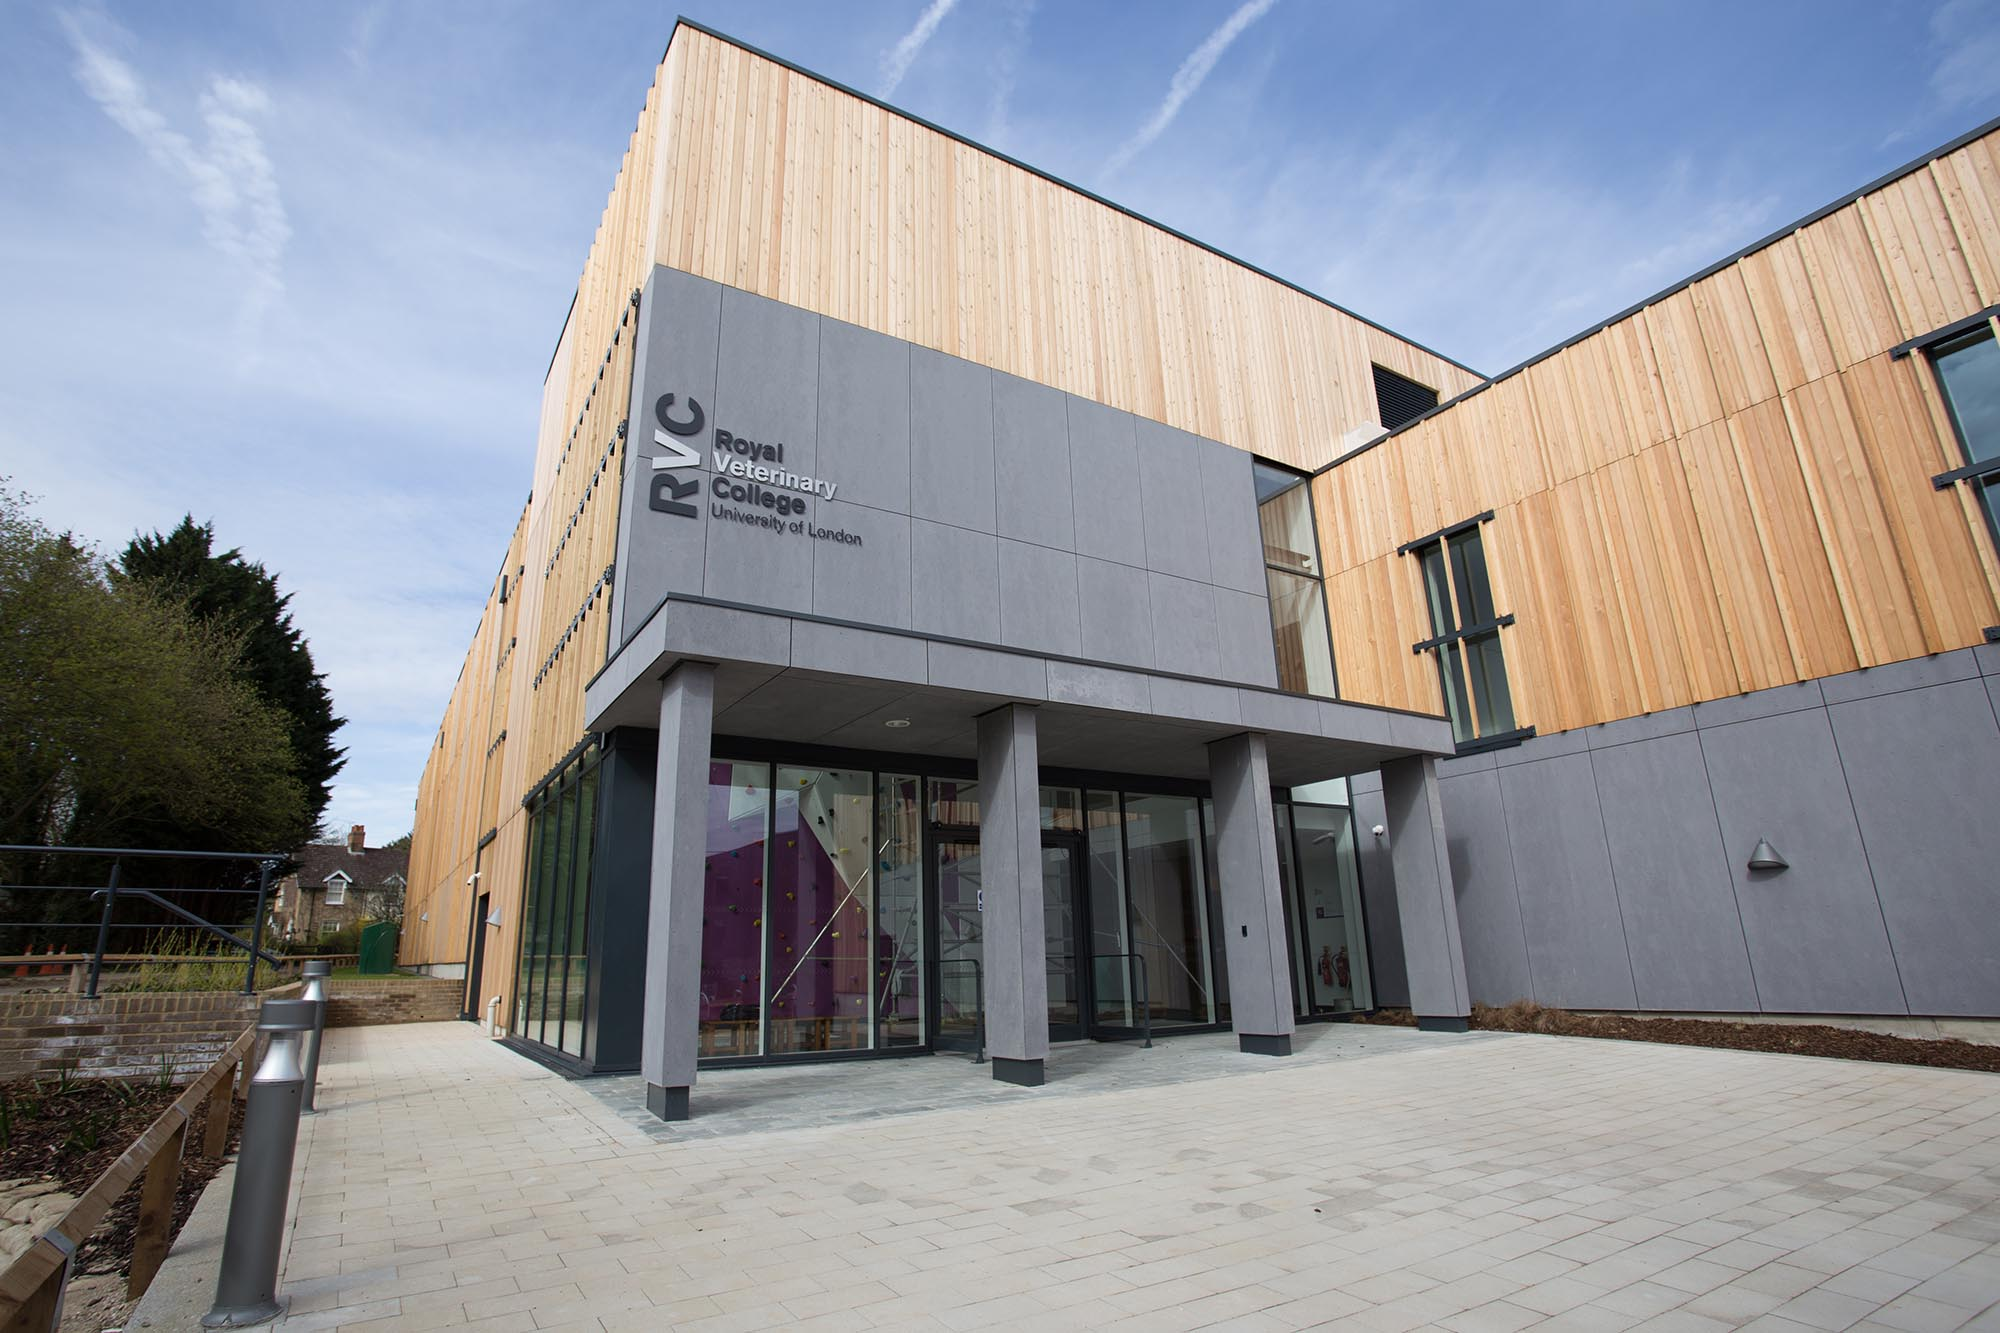 Royal Veterinary College Sports Facility Ashe